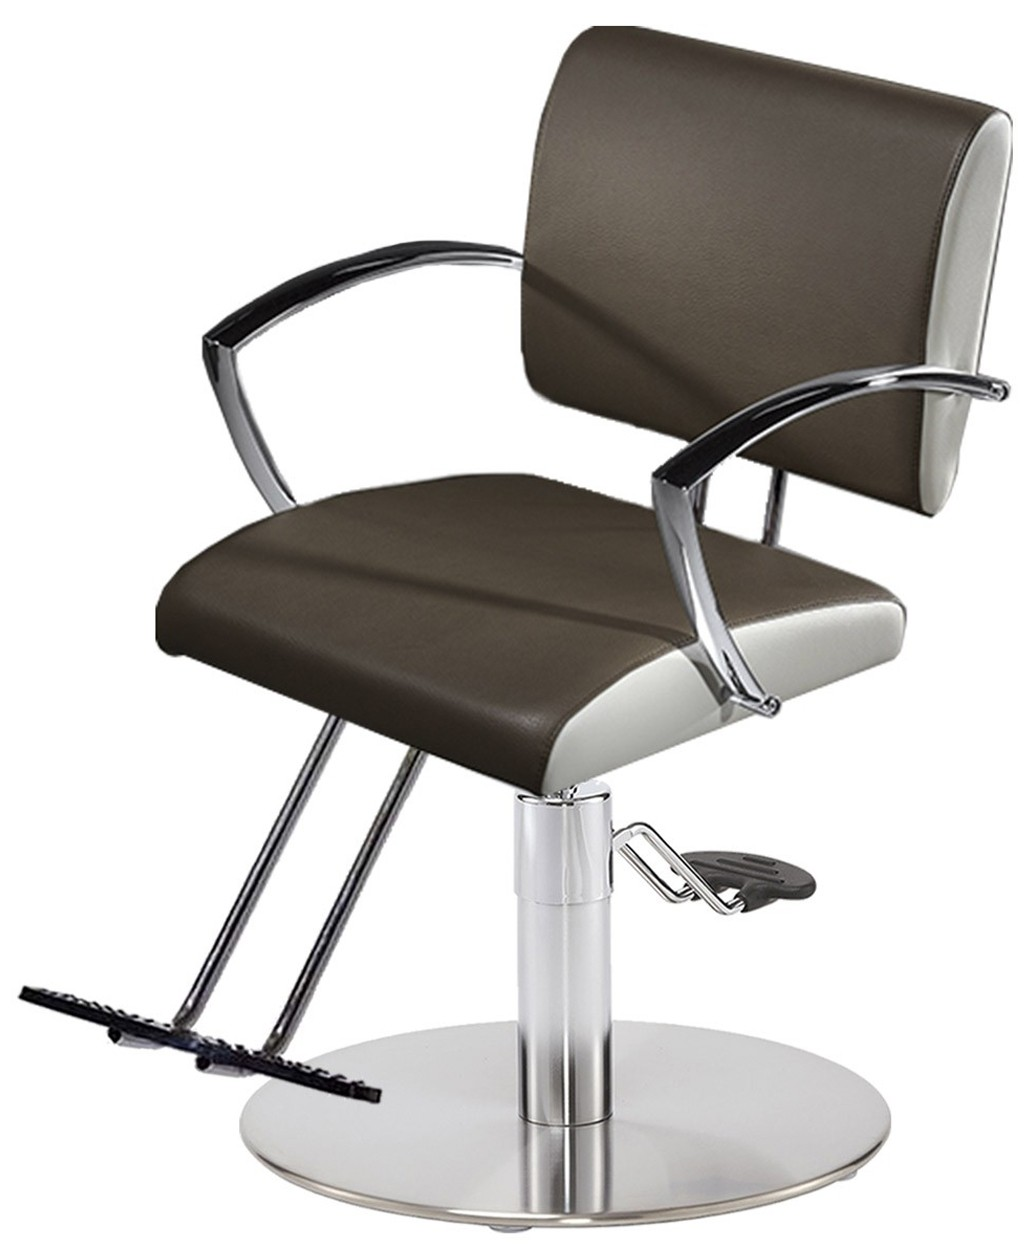 SH-930 Nexia Styling Chair